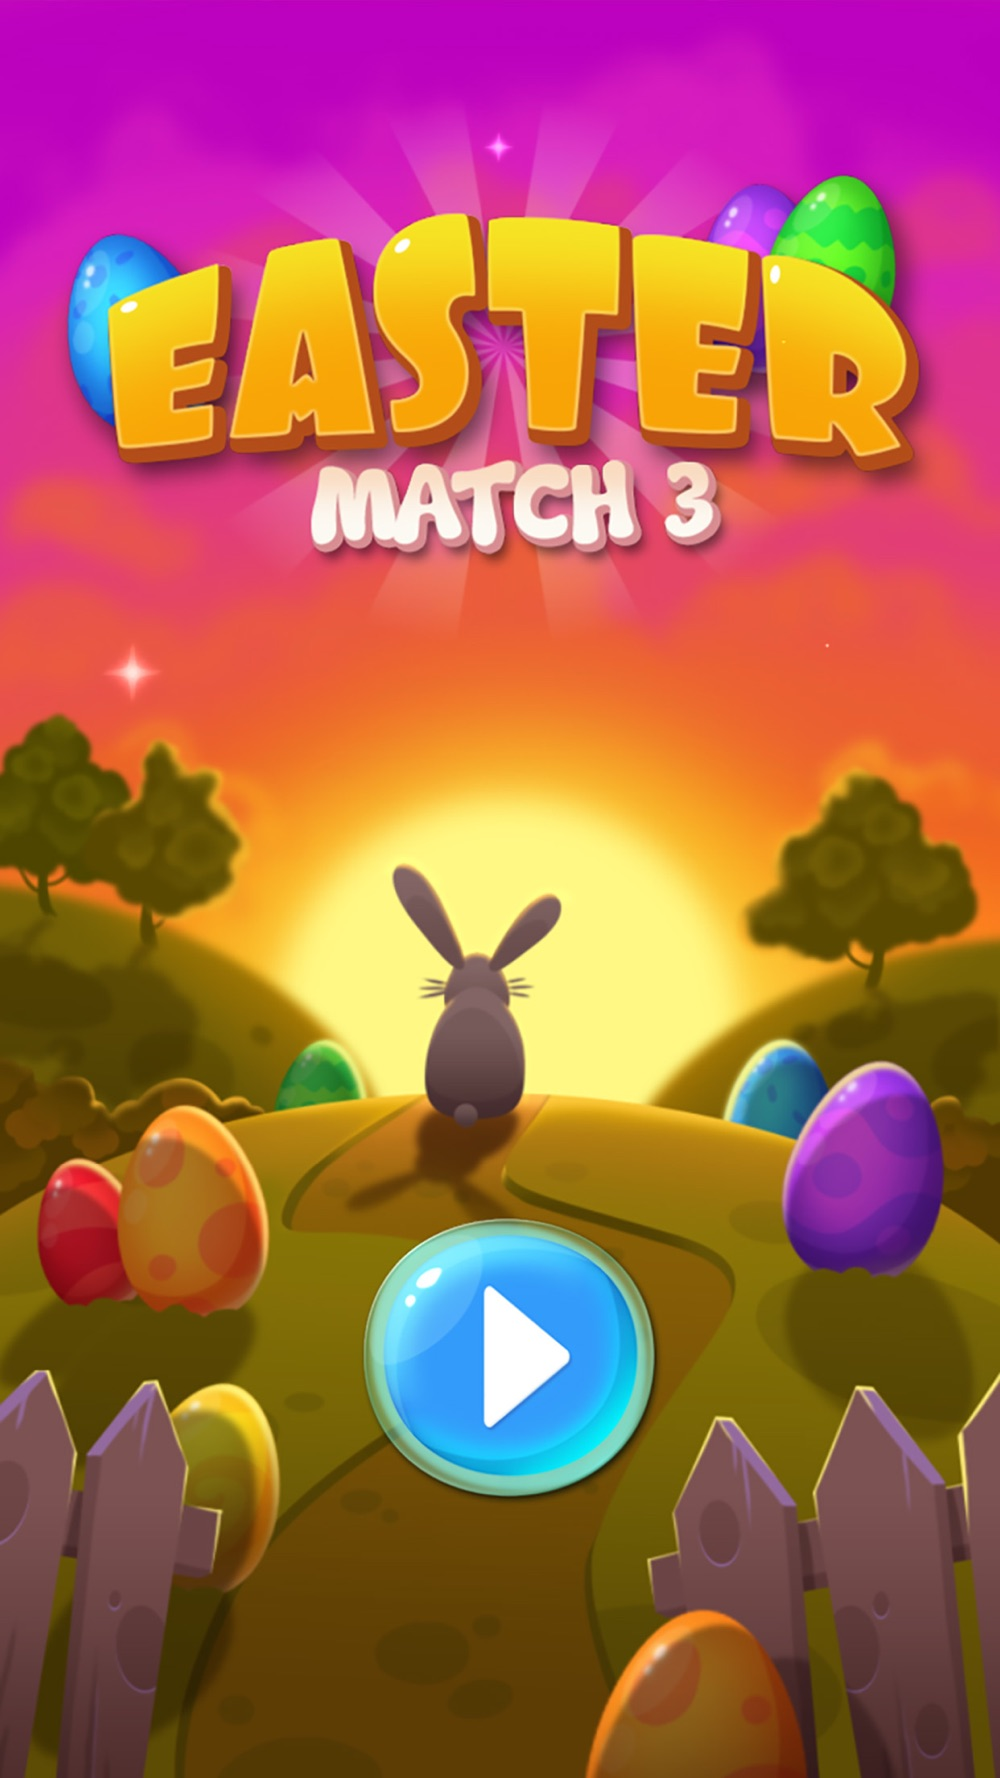 Easter Match 3: Egg Swipe King Match 3 Puzzle cheat codes